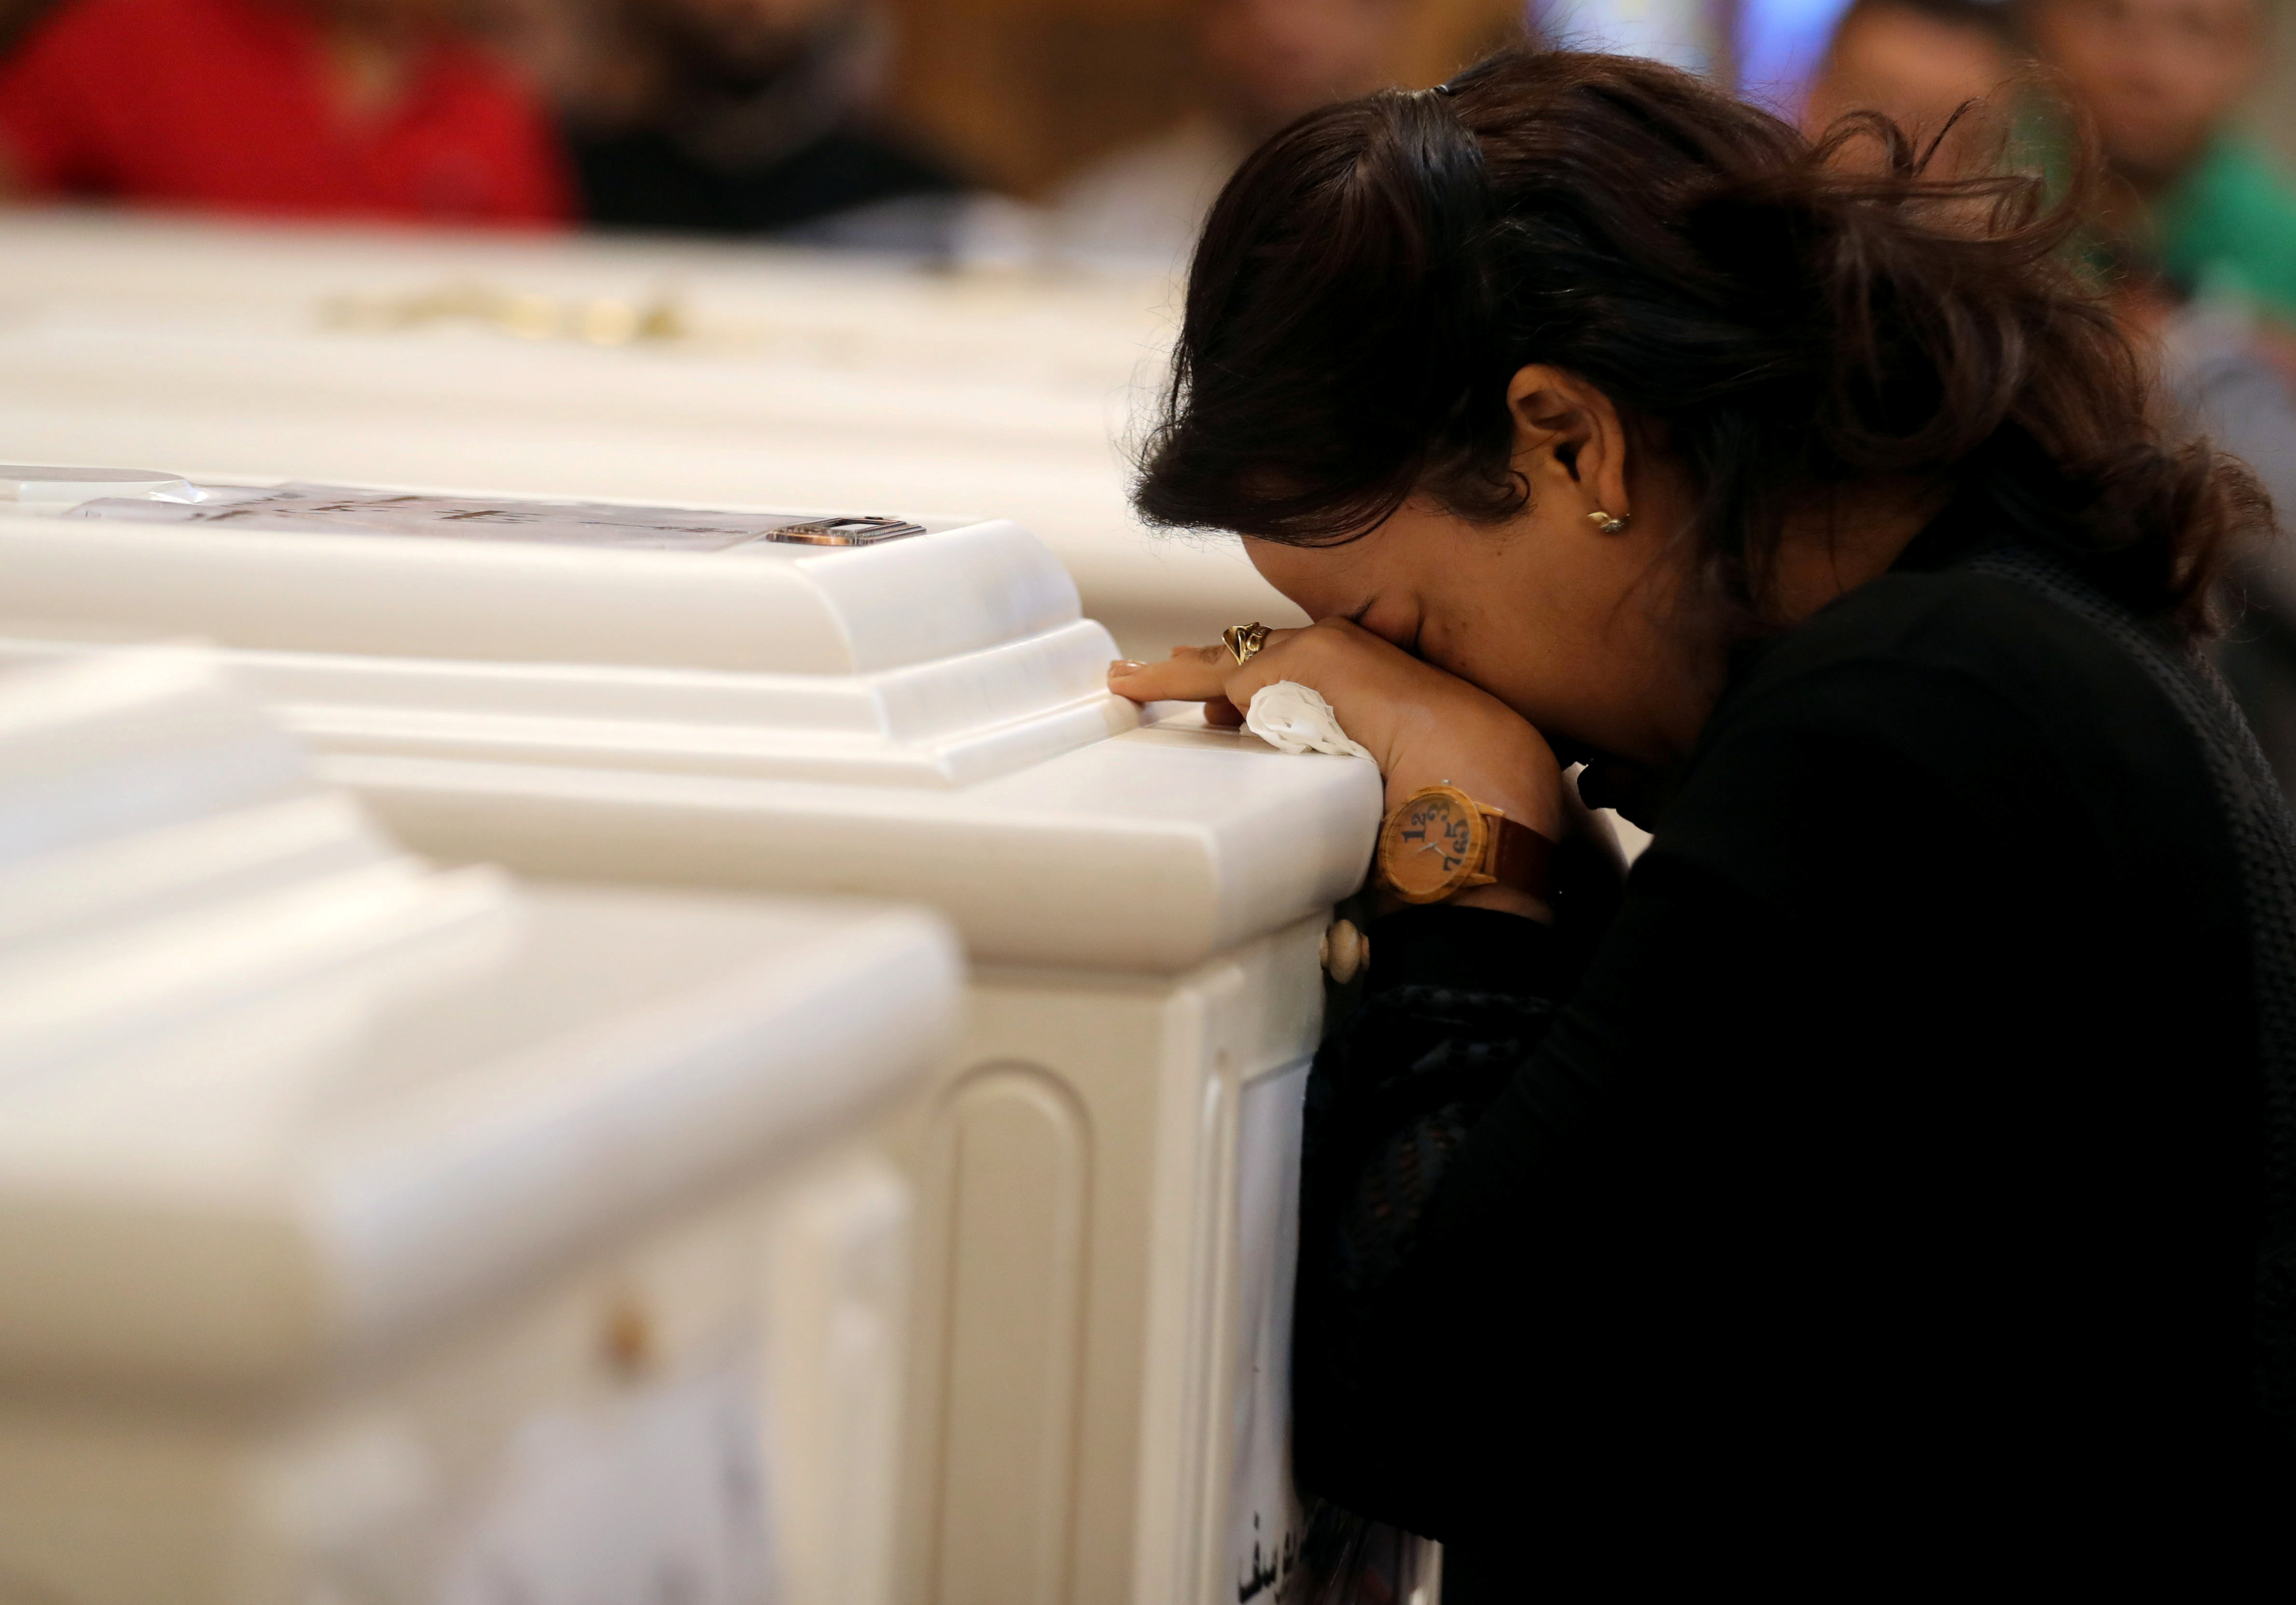 A relative of victims of an attack on a group of Coptic Christians attends a funeral, at the Prince Tadros Church in Minya, Egypt, November 3, 2018. REUTERS/Mohamed Abd El Ghany